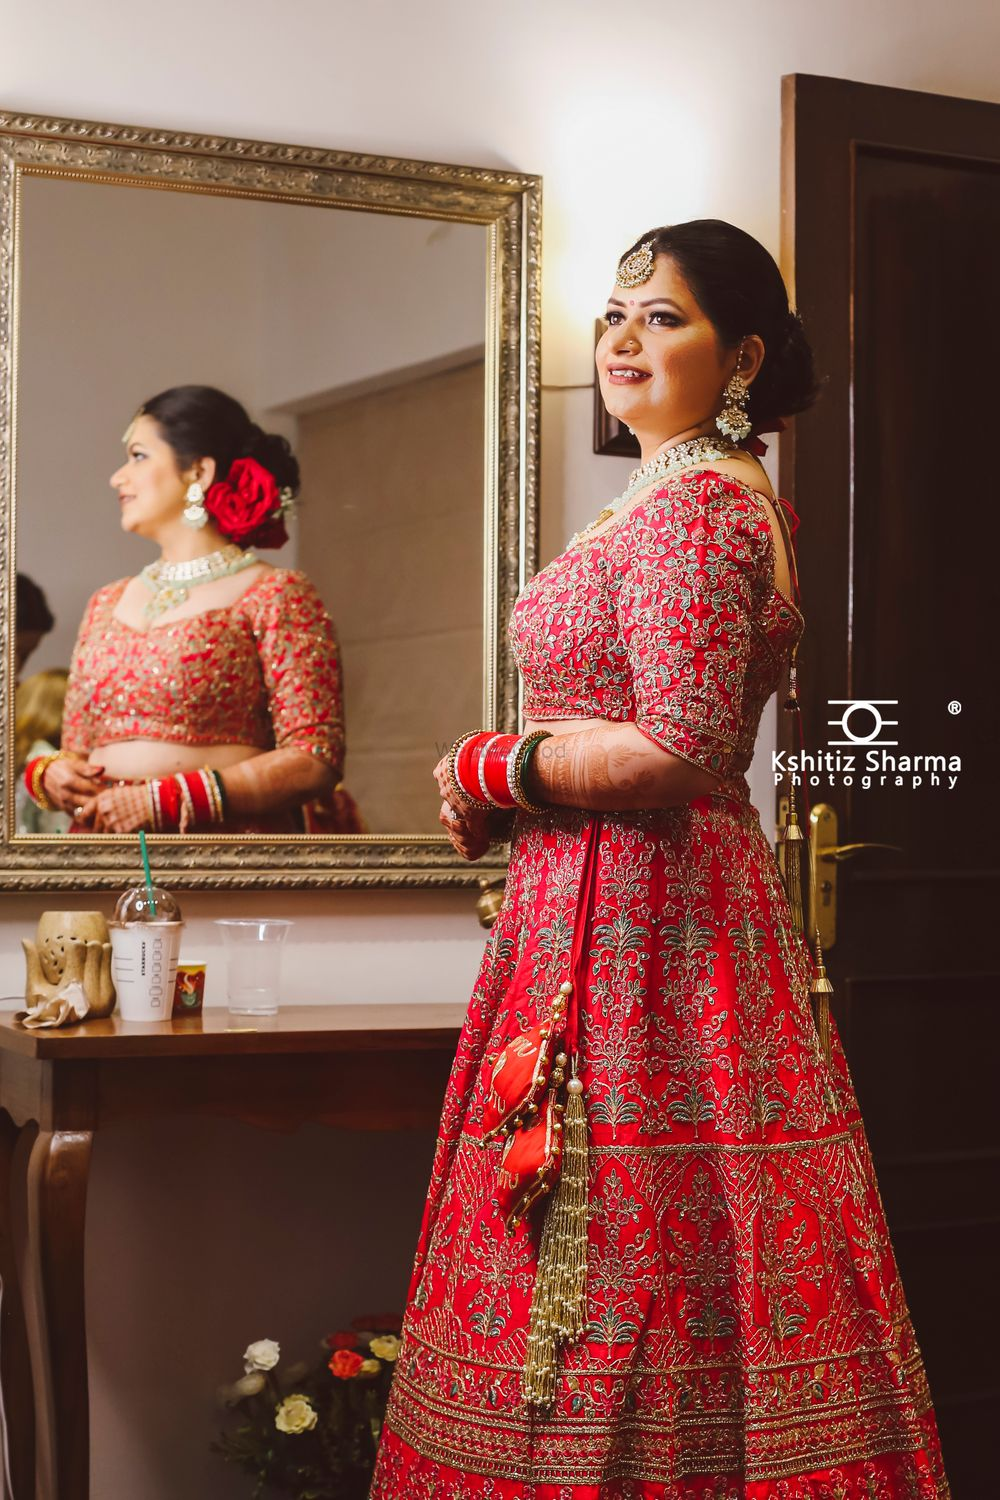 Photo From Brides - By Kshitiz Sharma Photography